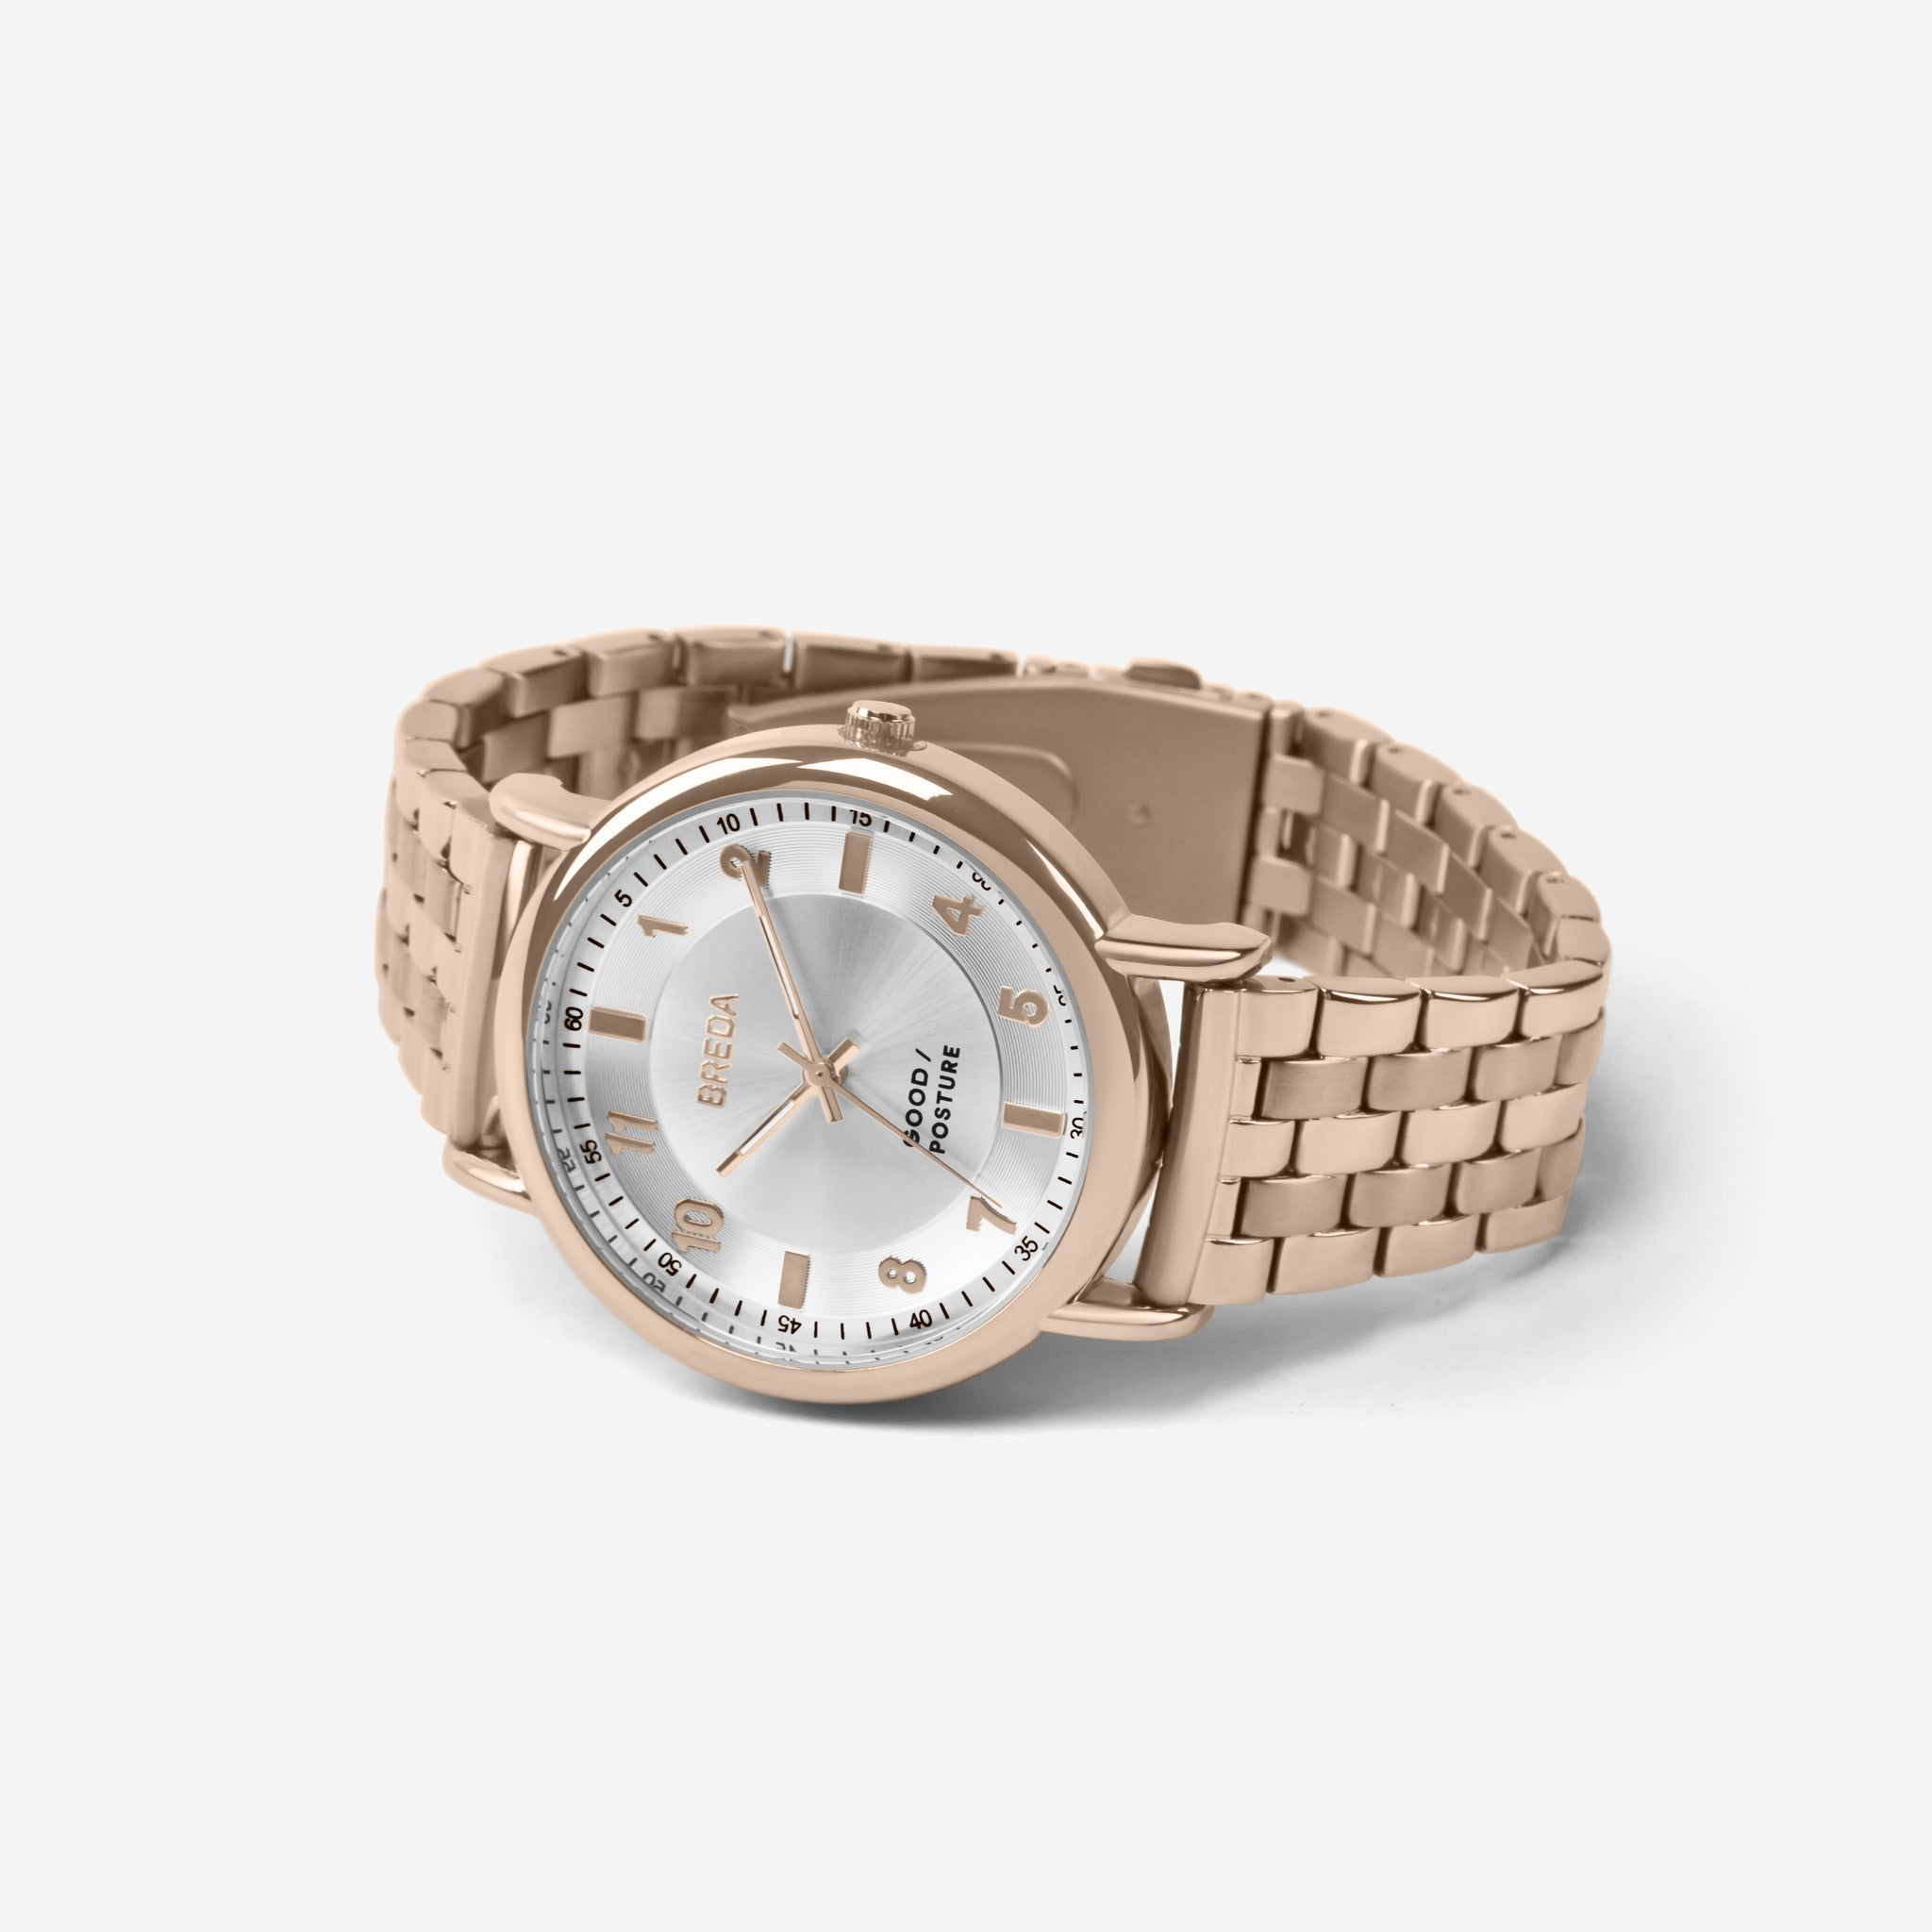 //cdn.shopify.com/s/files/1/0879/6650/products/BREDA-Good-Posture-Theophilus-Martins-Blossom-5017c-Rose-Gold-Watch-Angle_-_Copy_1024x1024.jpg?v=1522791403